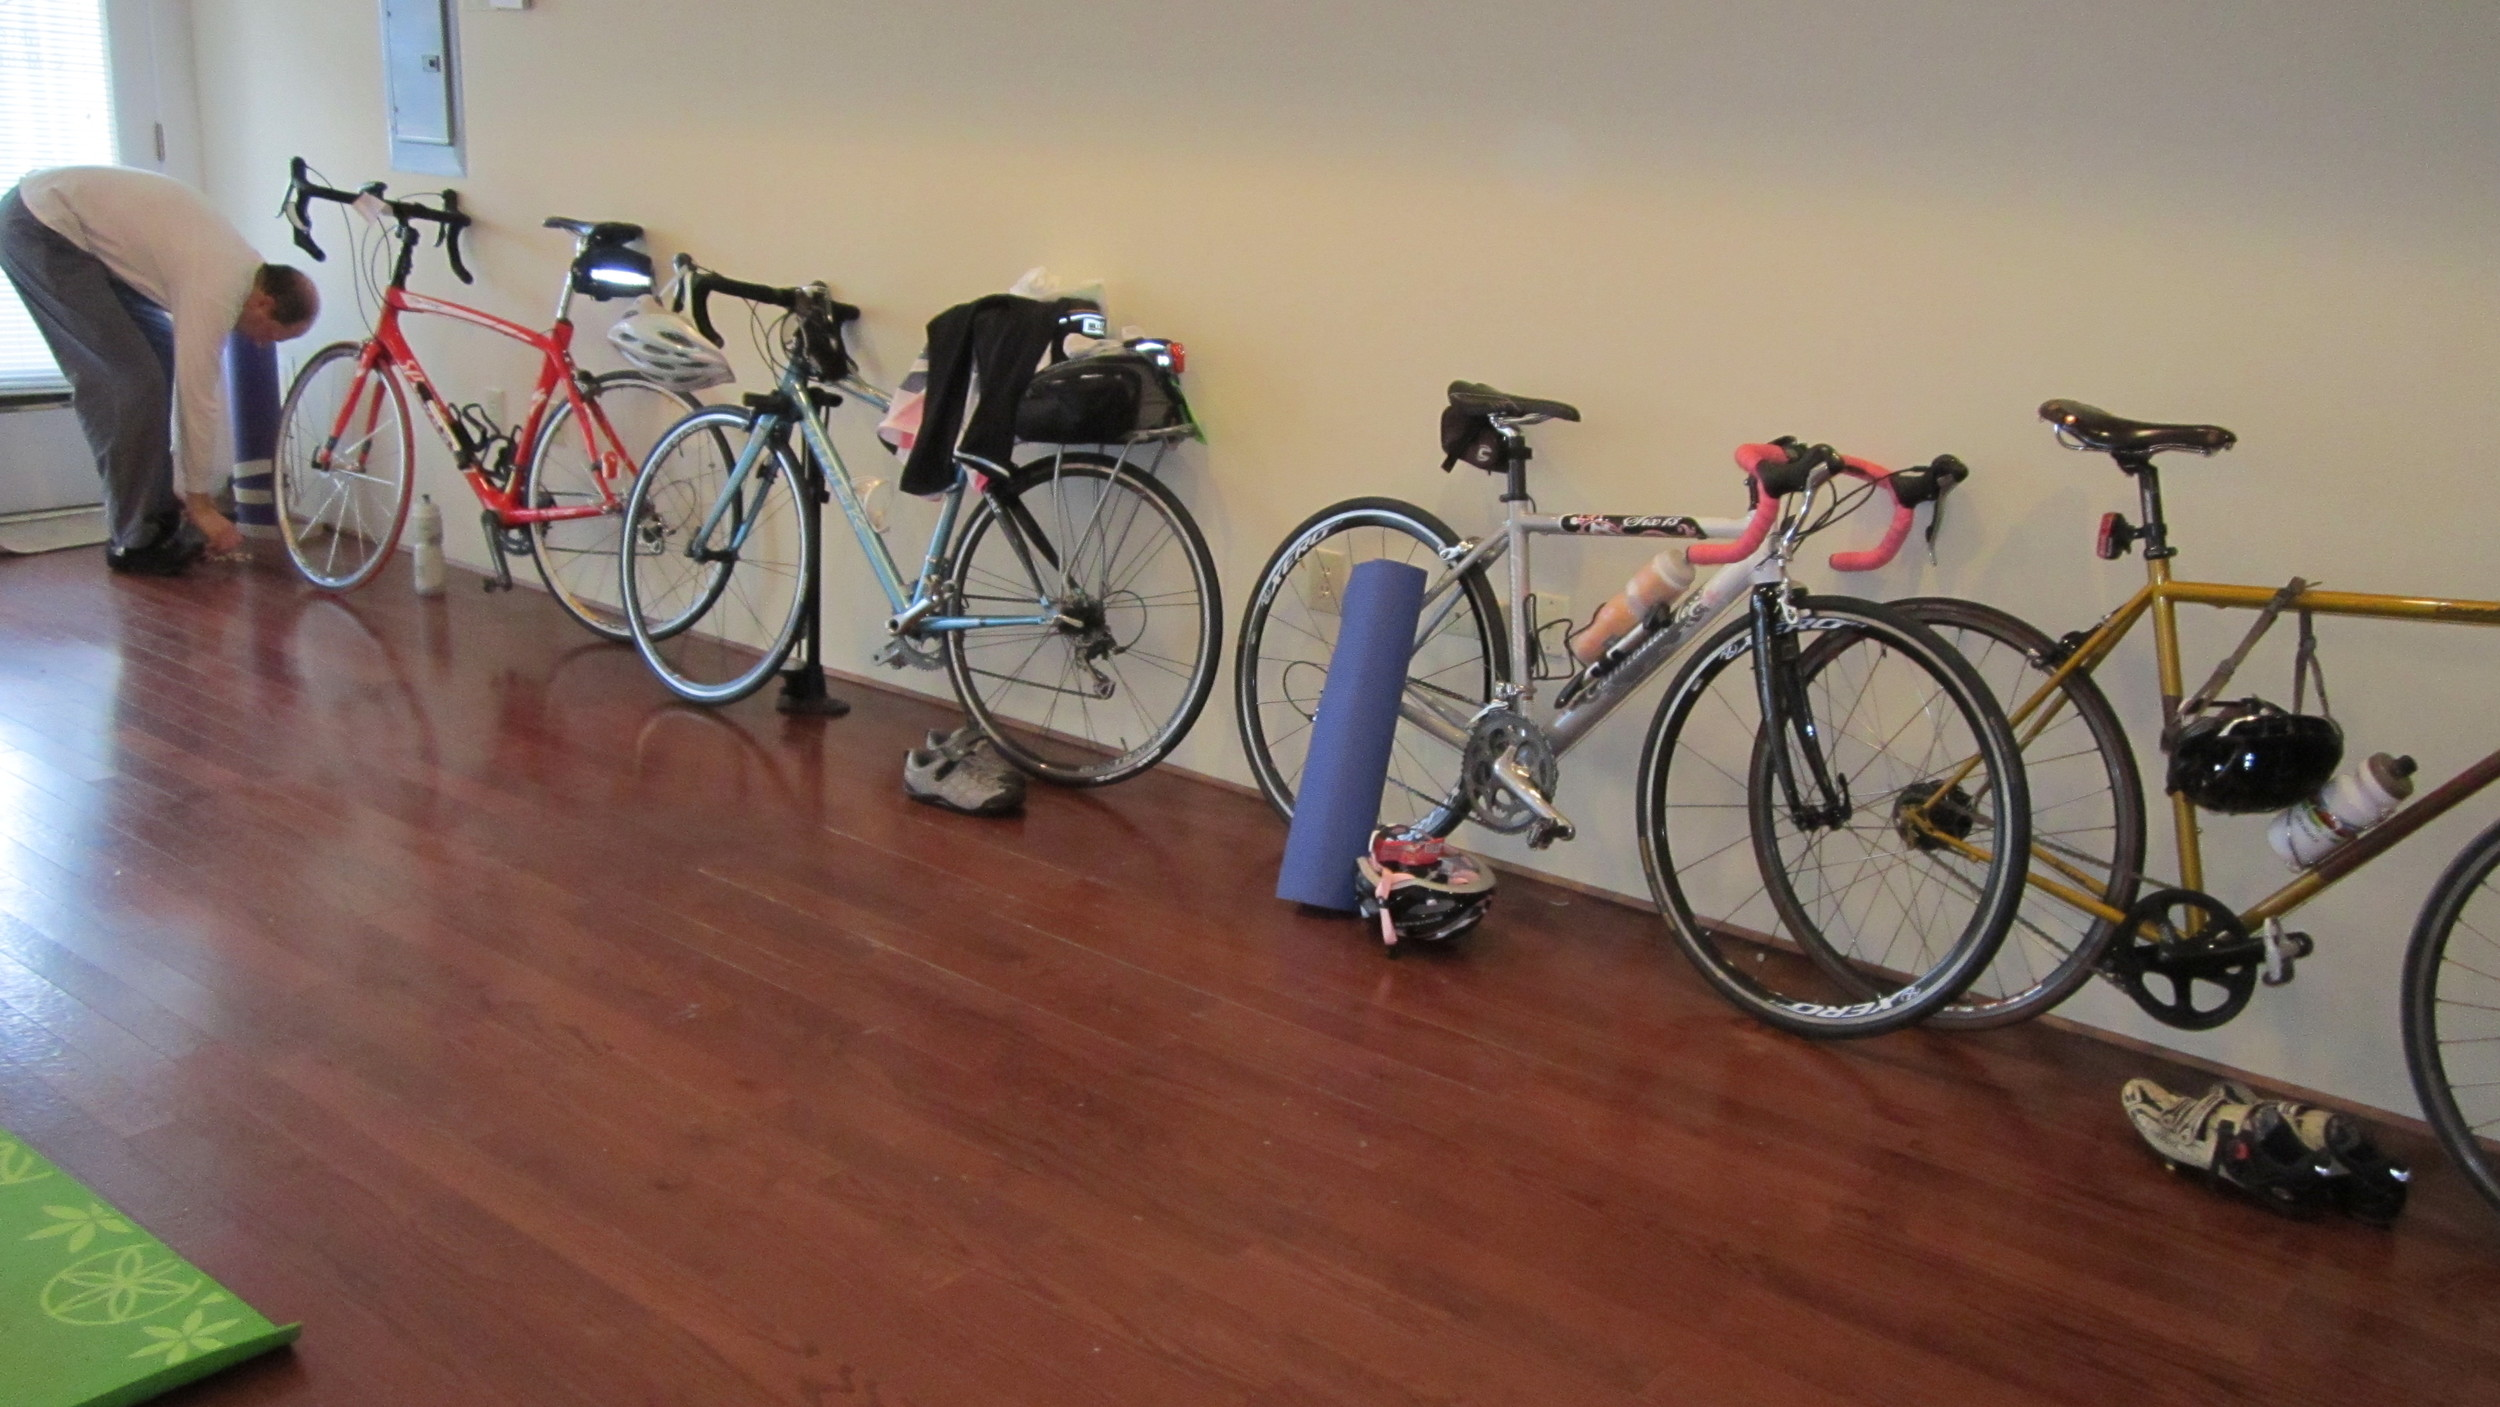 Bikes in my yoga studio yes, they are sports that go together beautifully.